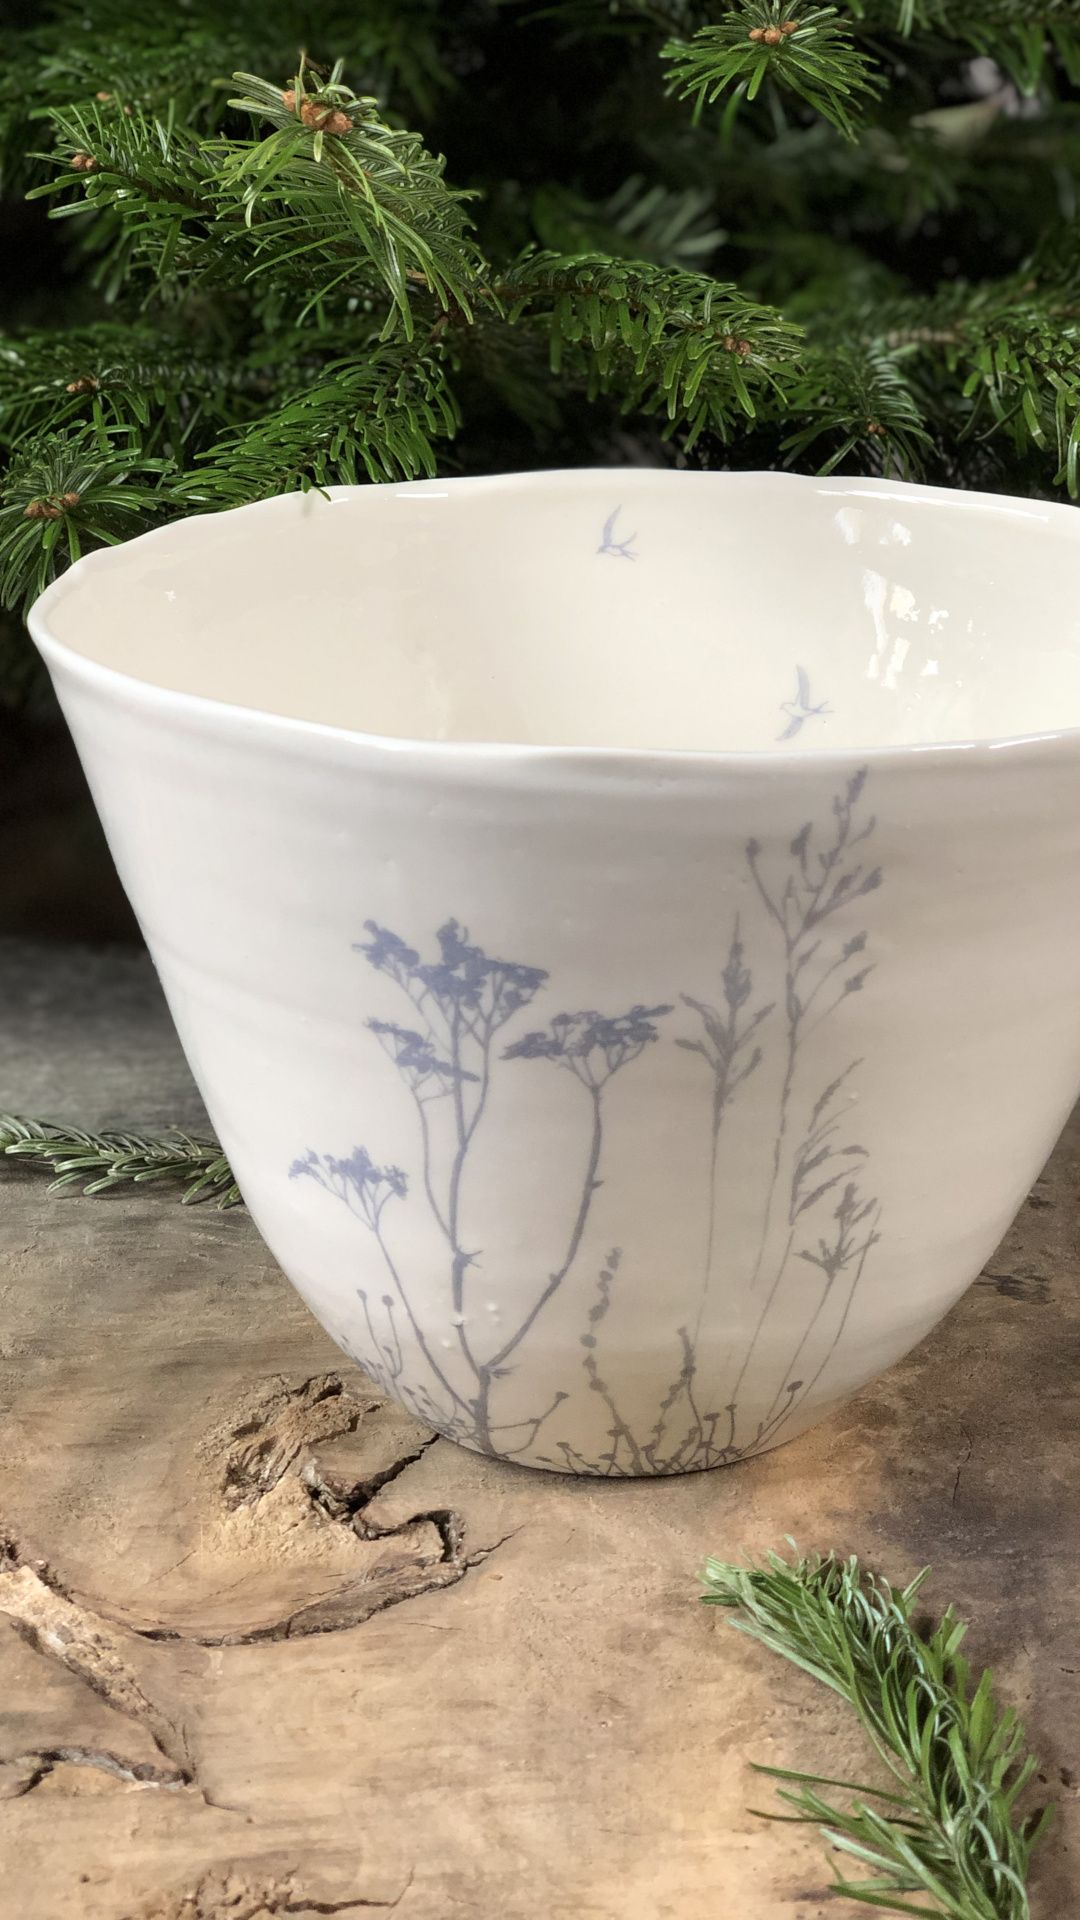 🇫🇷You will fall in love with these beautiful white porcelain bowls, enamelled in transparent, designed by the French artist Myriam Ait Amar.A flight of blue or golden flowers and plants brightens up an immaculate white to make us dream while lightness...  ✨📷 © #garancecassien #madeinfrance #ceramics #interiordesign #occitanie#handmade #savoirfaire #gold #myriamaitamarceramics #ceramique #luxe #design #slowlife  #porcelain #tableware #homedecor #ceramiclove #ceramiclife #bowl #saladbowl